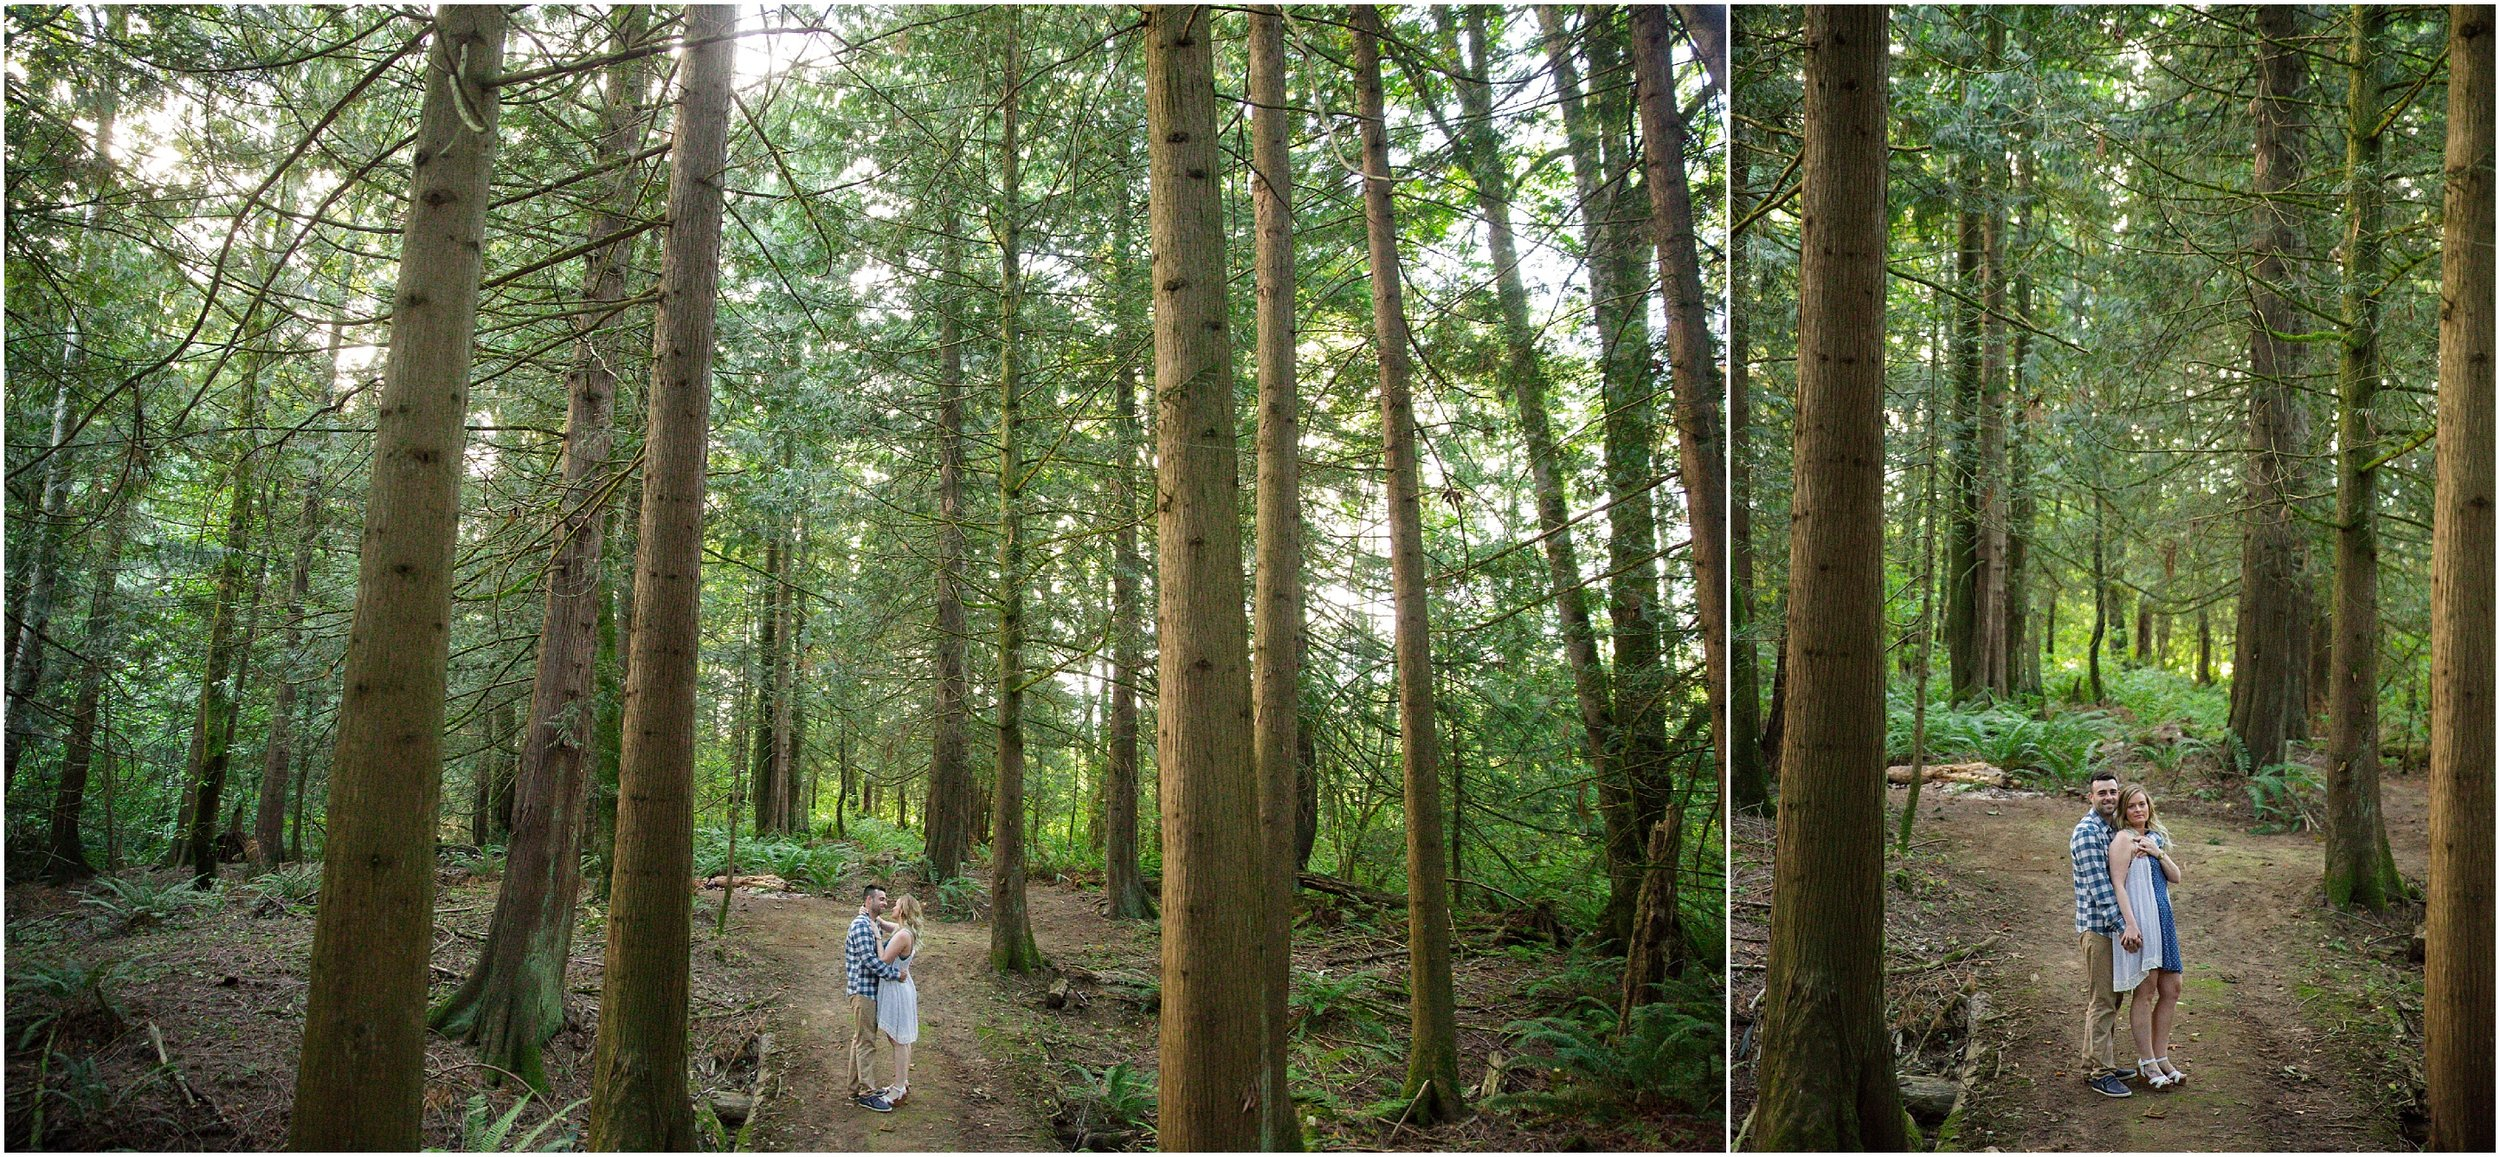 Amazing Day Photography - Camping Engagement Session - Langley Photographer - Langley Engagement Photographer - Langley Wedding Photographer (2).jpg